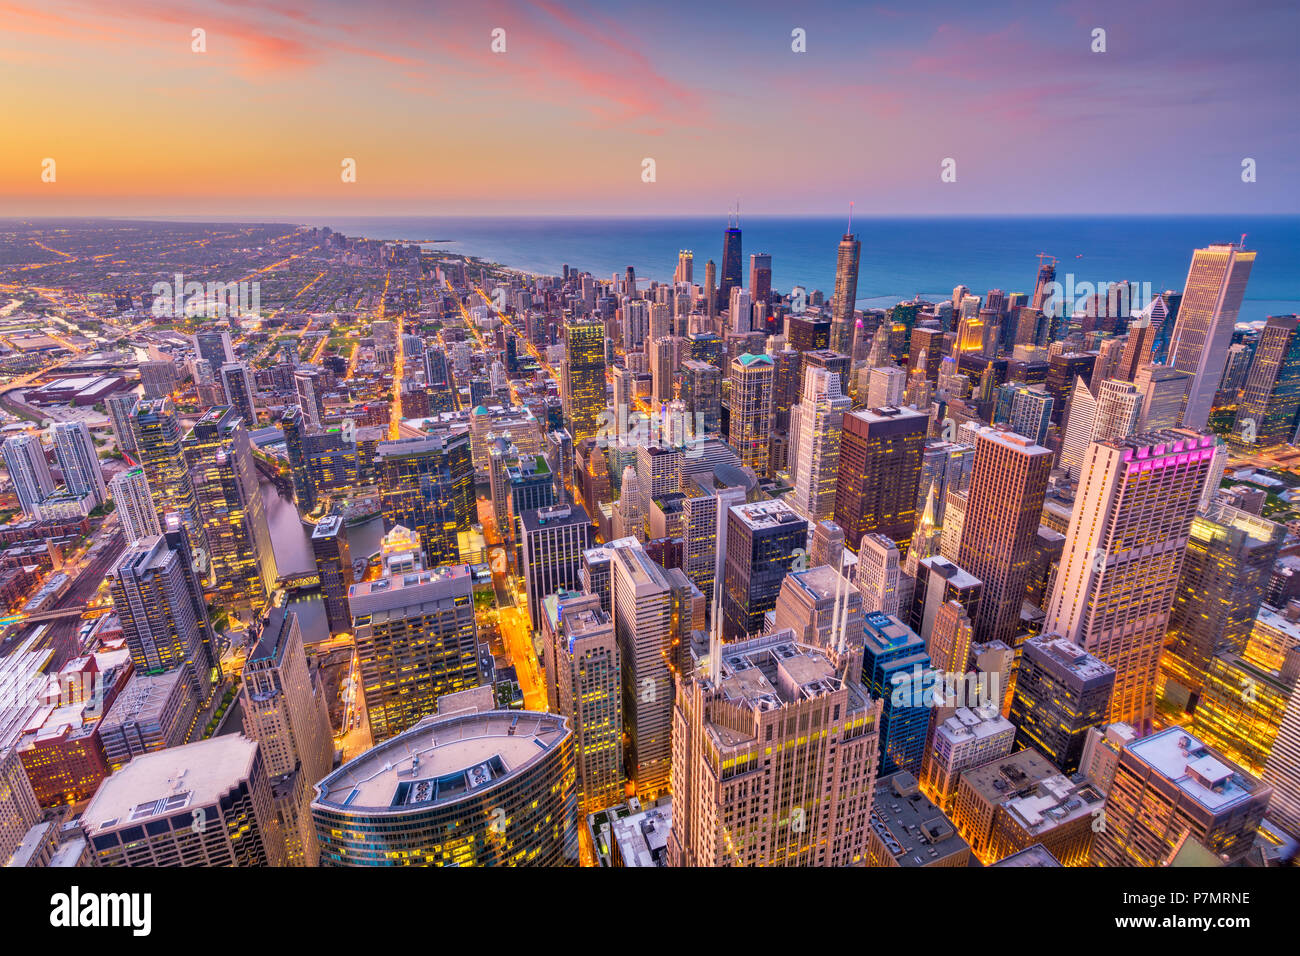 Chicago, Illinois, USA aerial downtown skyline at dusk towards Lake Michigan. - Stock Image